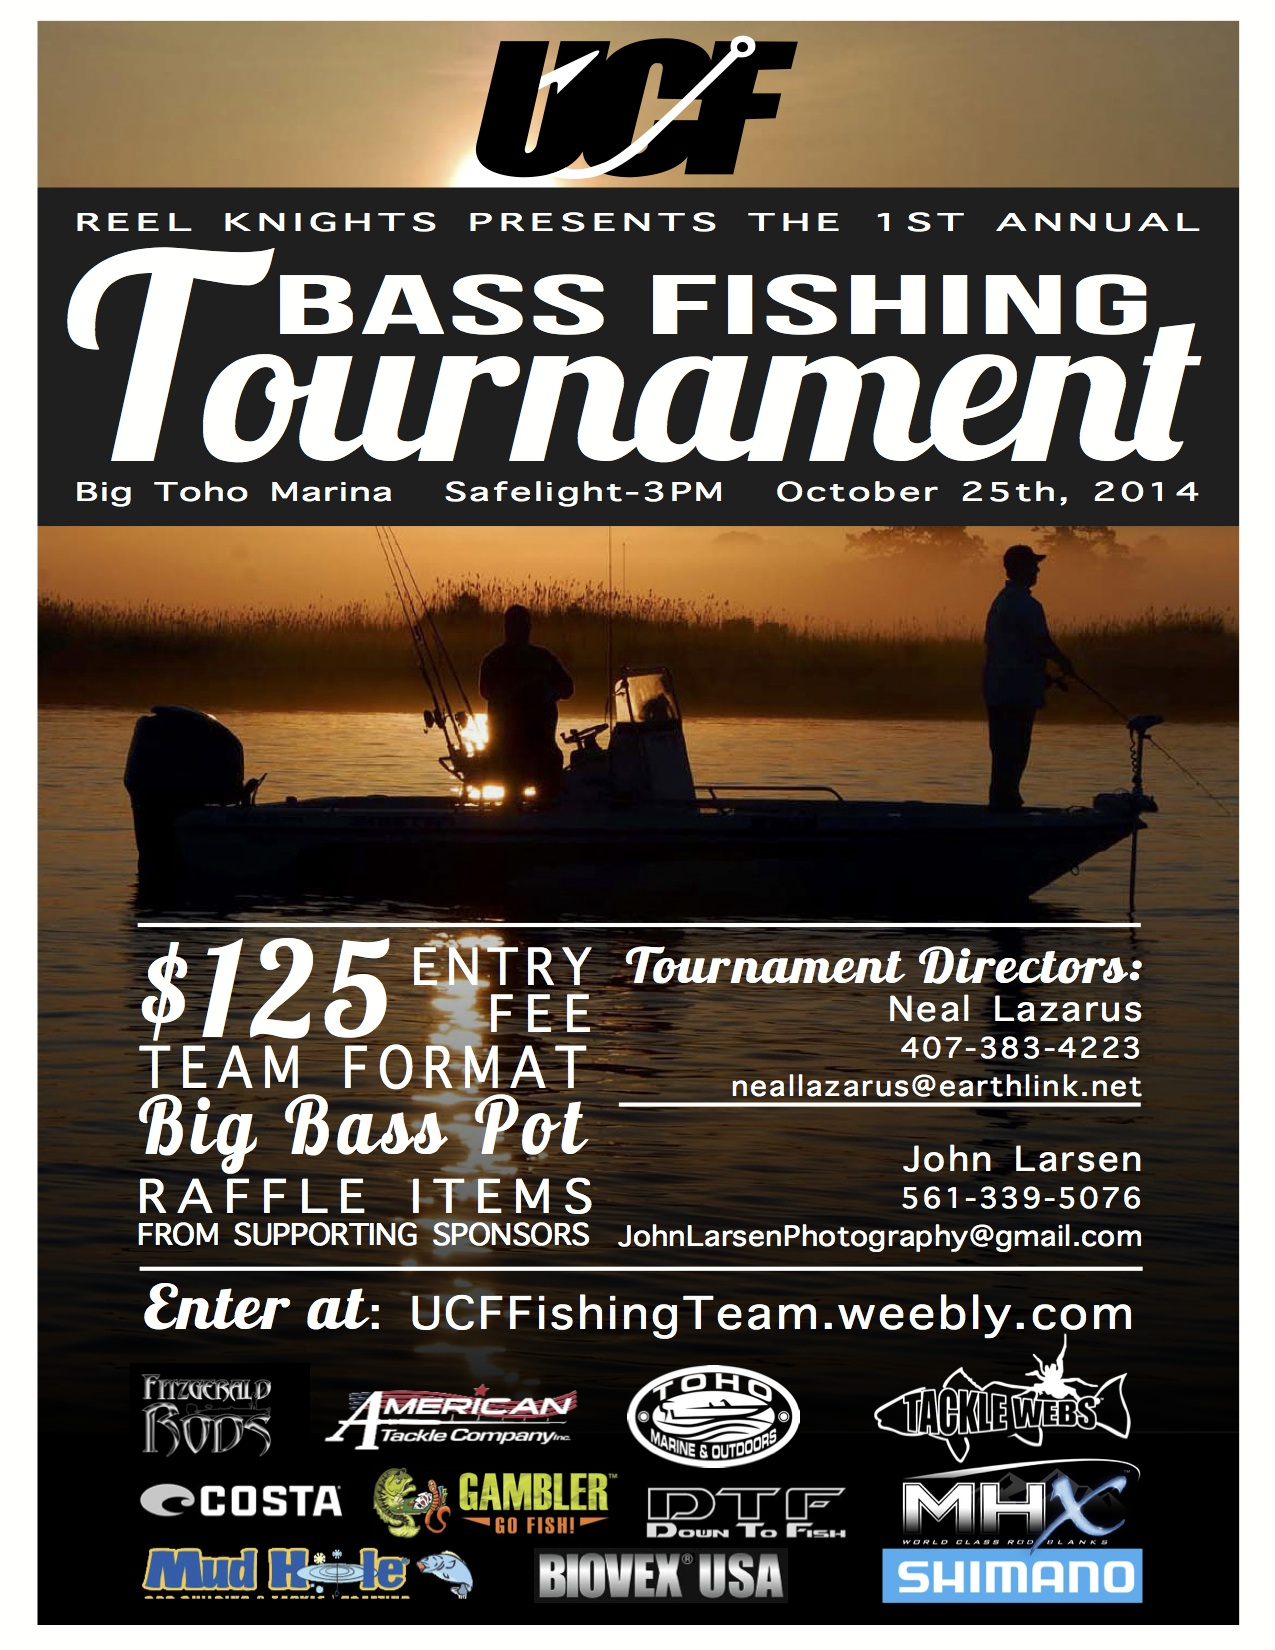 university of tampa map with The Reel Knights Of Ucf Present The 1st Annual Bass Fishing Tournament On Lake Toho on Aerial Photographs Of Miami in addition Sport Parks moreover Fa6470 additionally Rollins College 1515 in addition File Kawasaki Ninja H2 PERF.